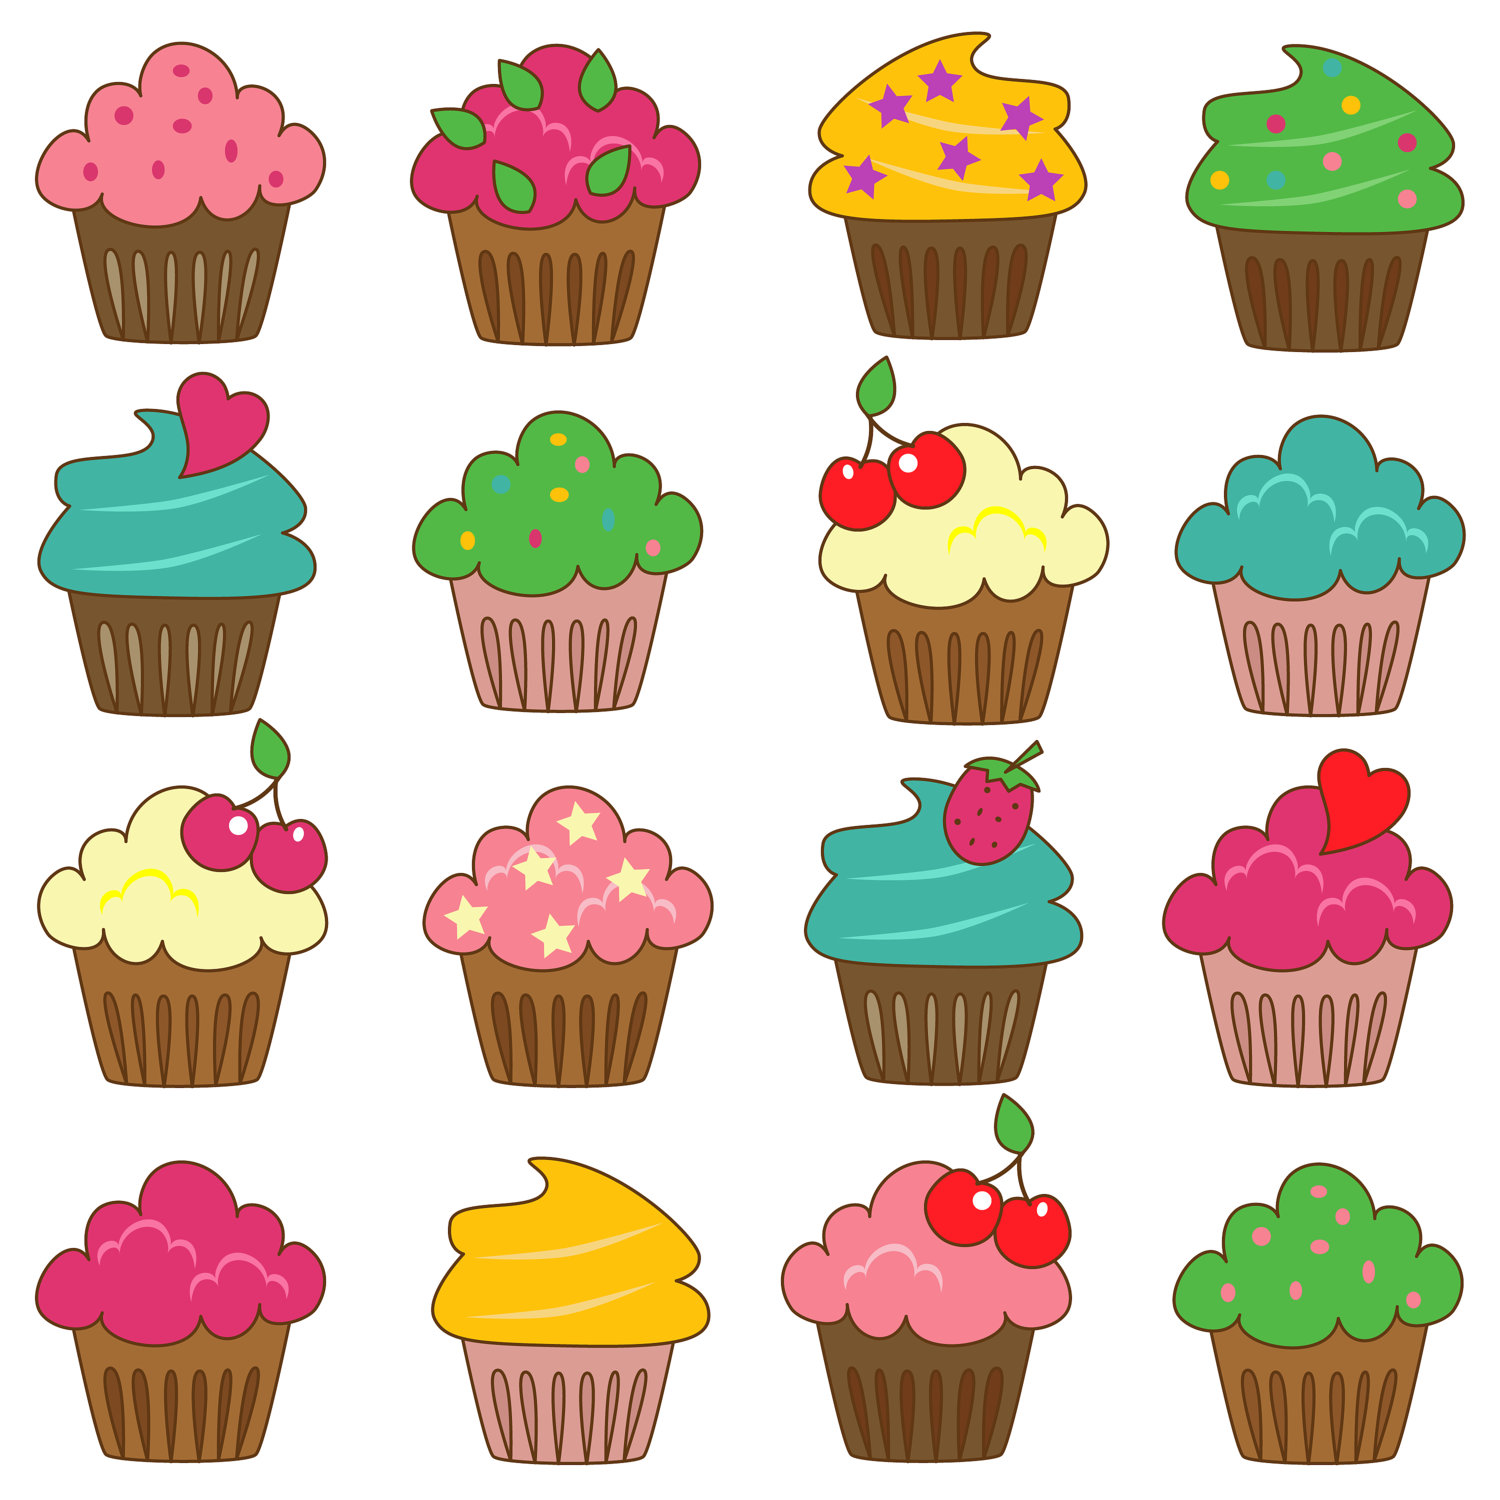 Blueberry Muffin clipart small cake Clipart Free Clip Art Panda